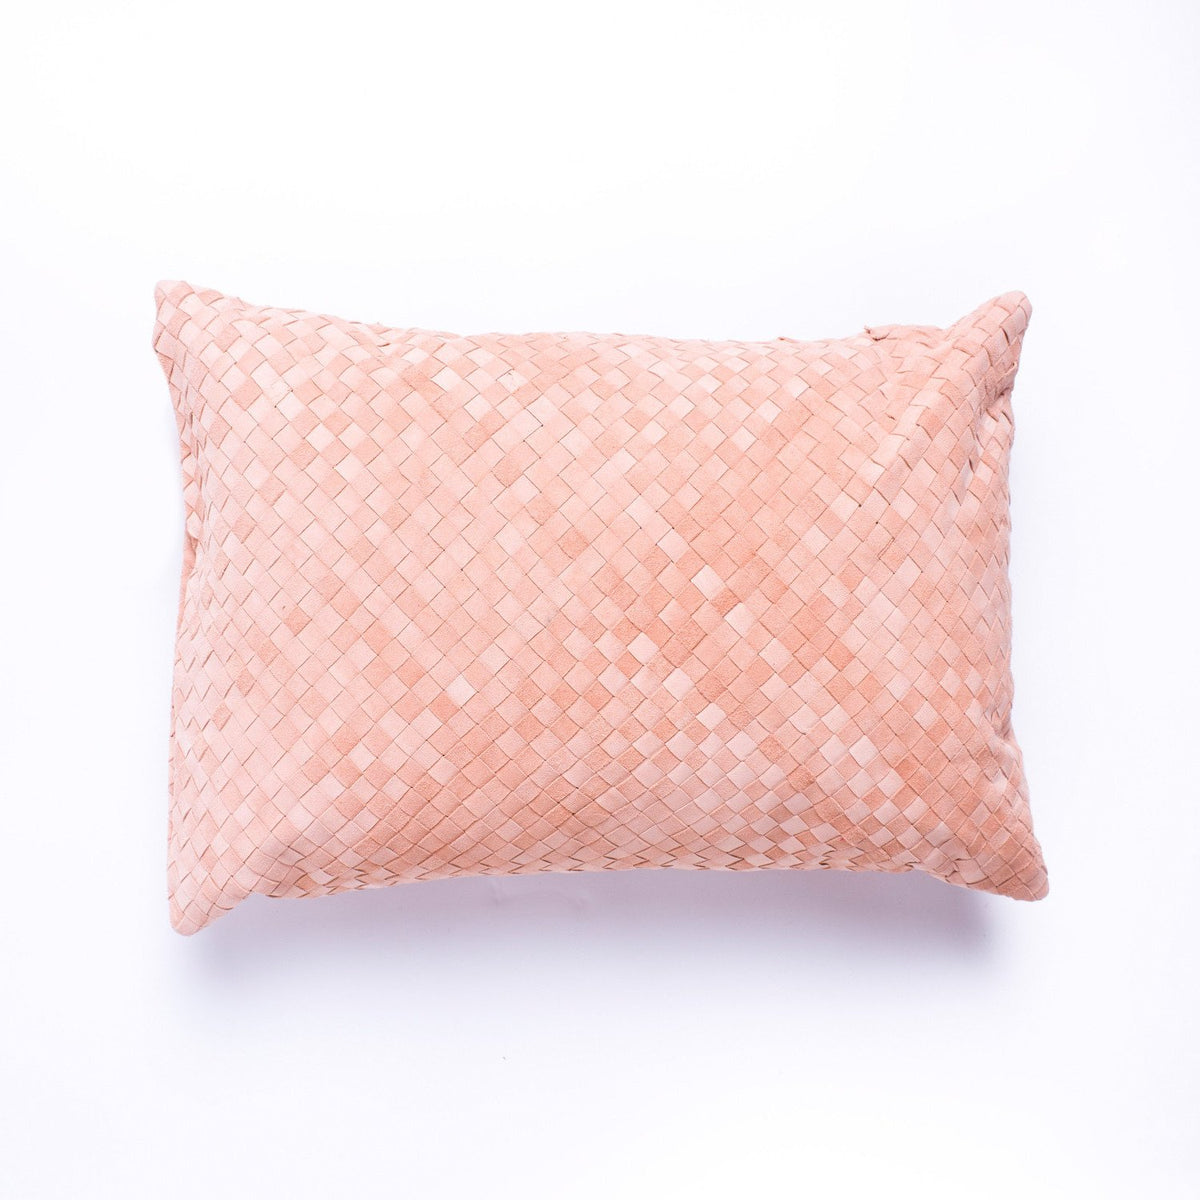 Fred cushion - Blush Suede